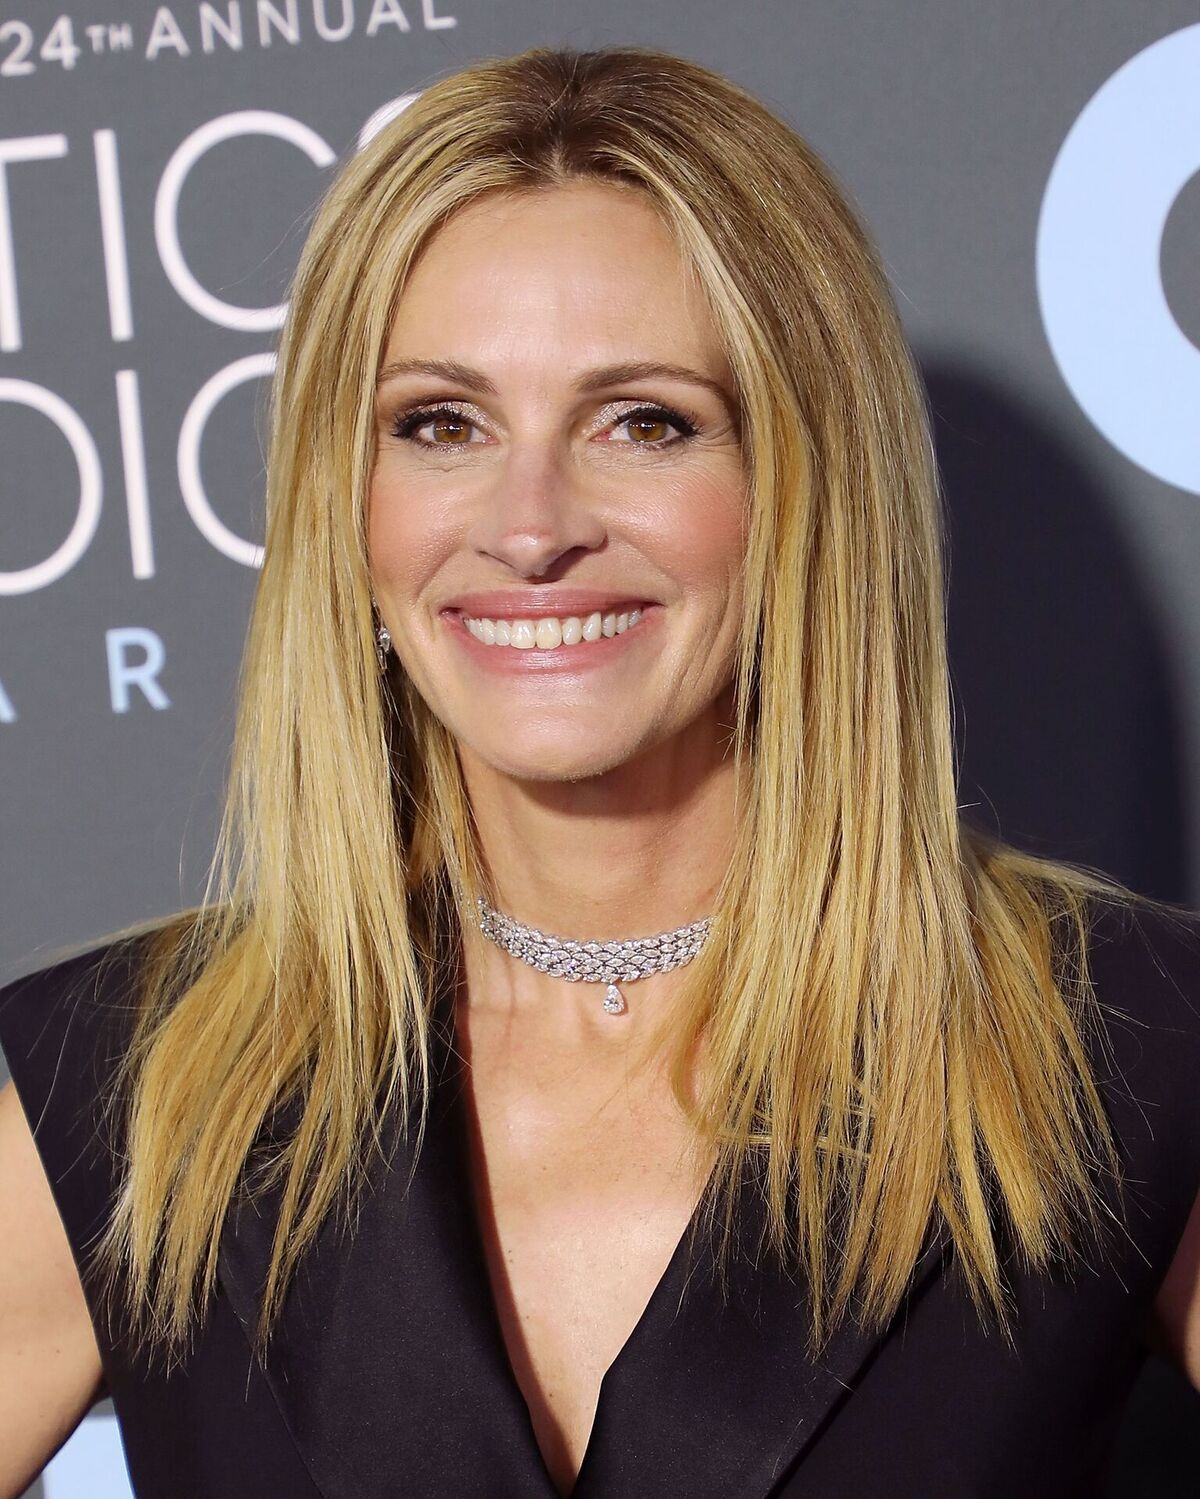 Julia Roberts attends The 24th Annual Critics' Choice Awards at Barker Hangar on January 13, 2019 in Santa Monica, California | Photo: Getty Images